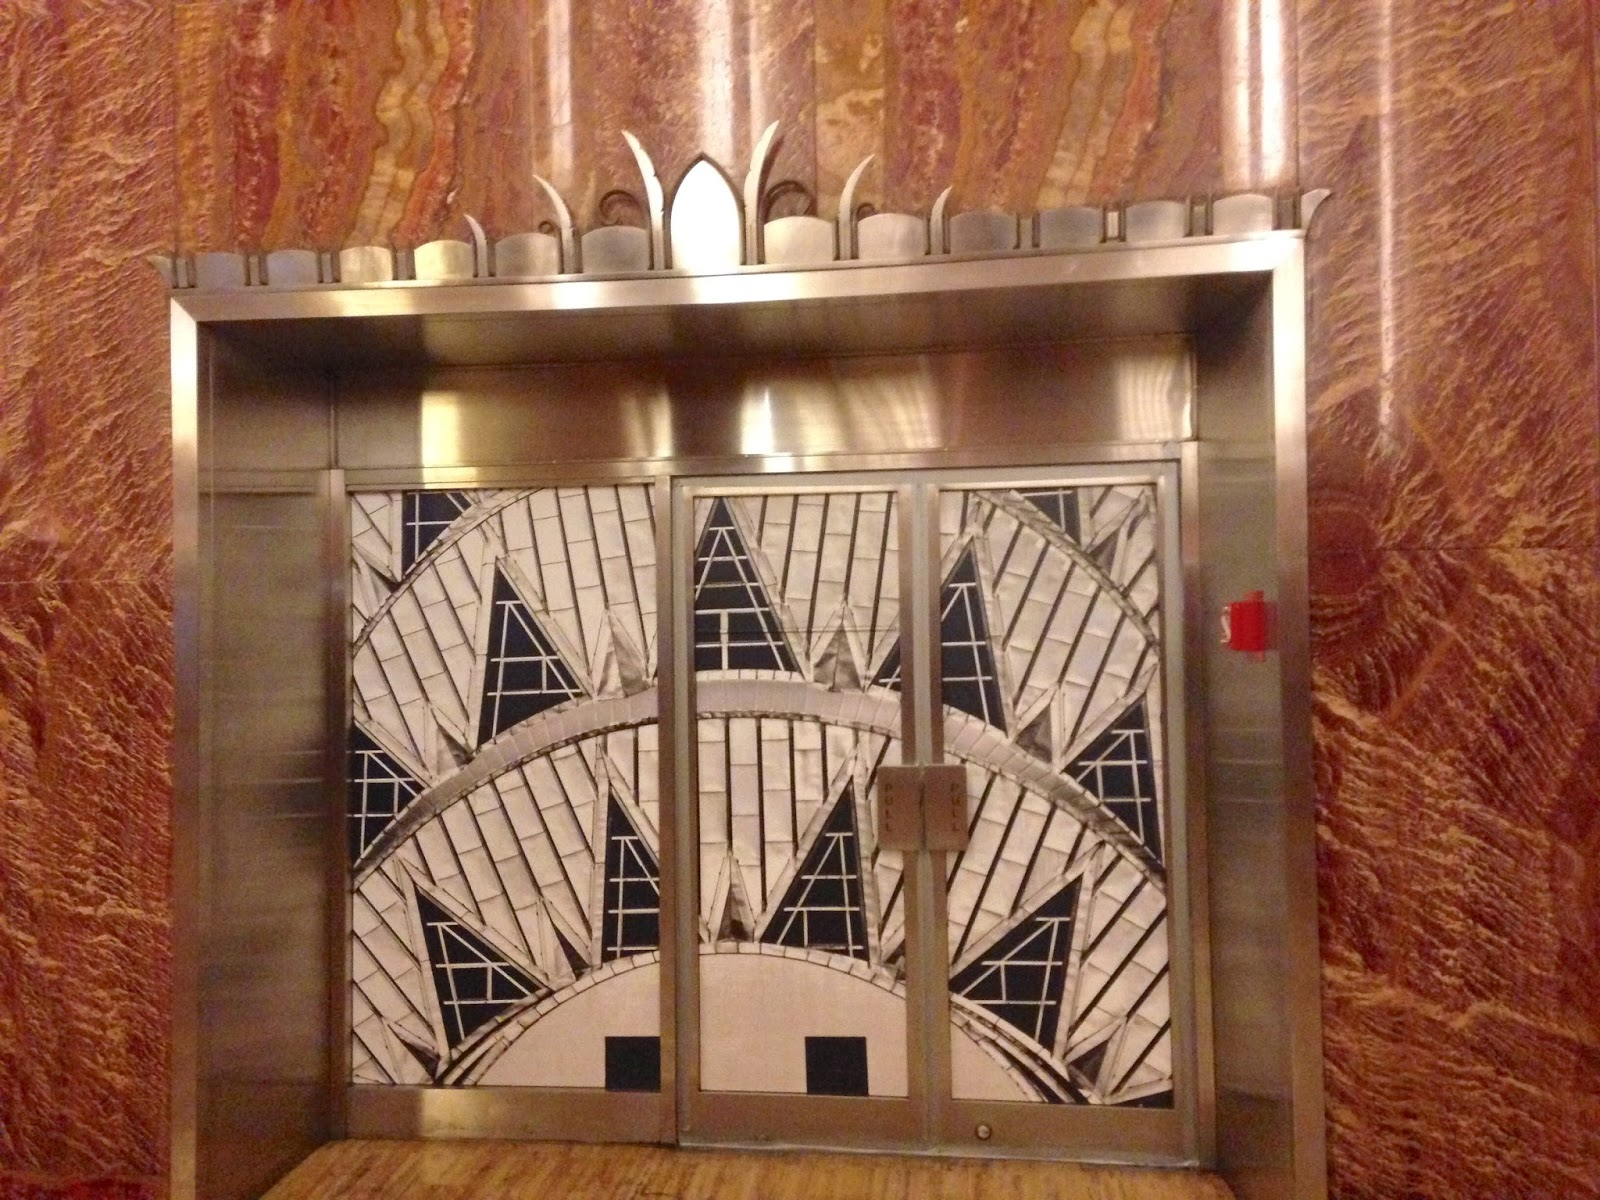 The 10 year plan touring nyc the chrysler building for Chrysler building lobby mural